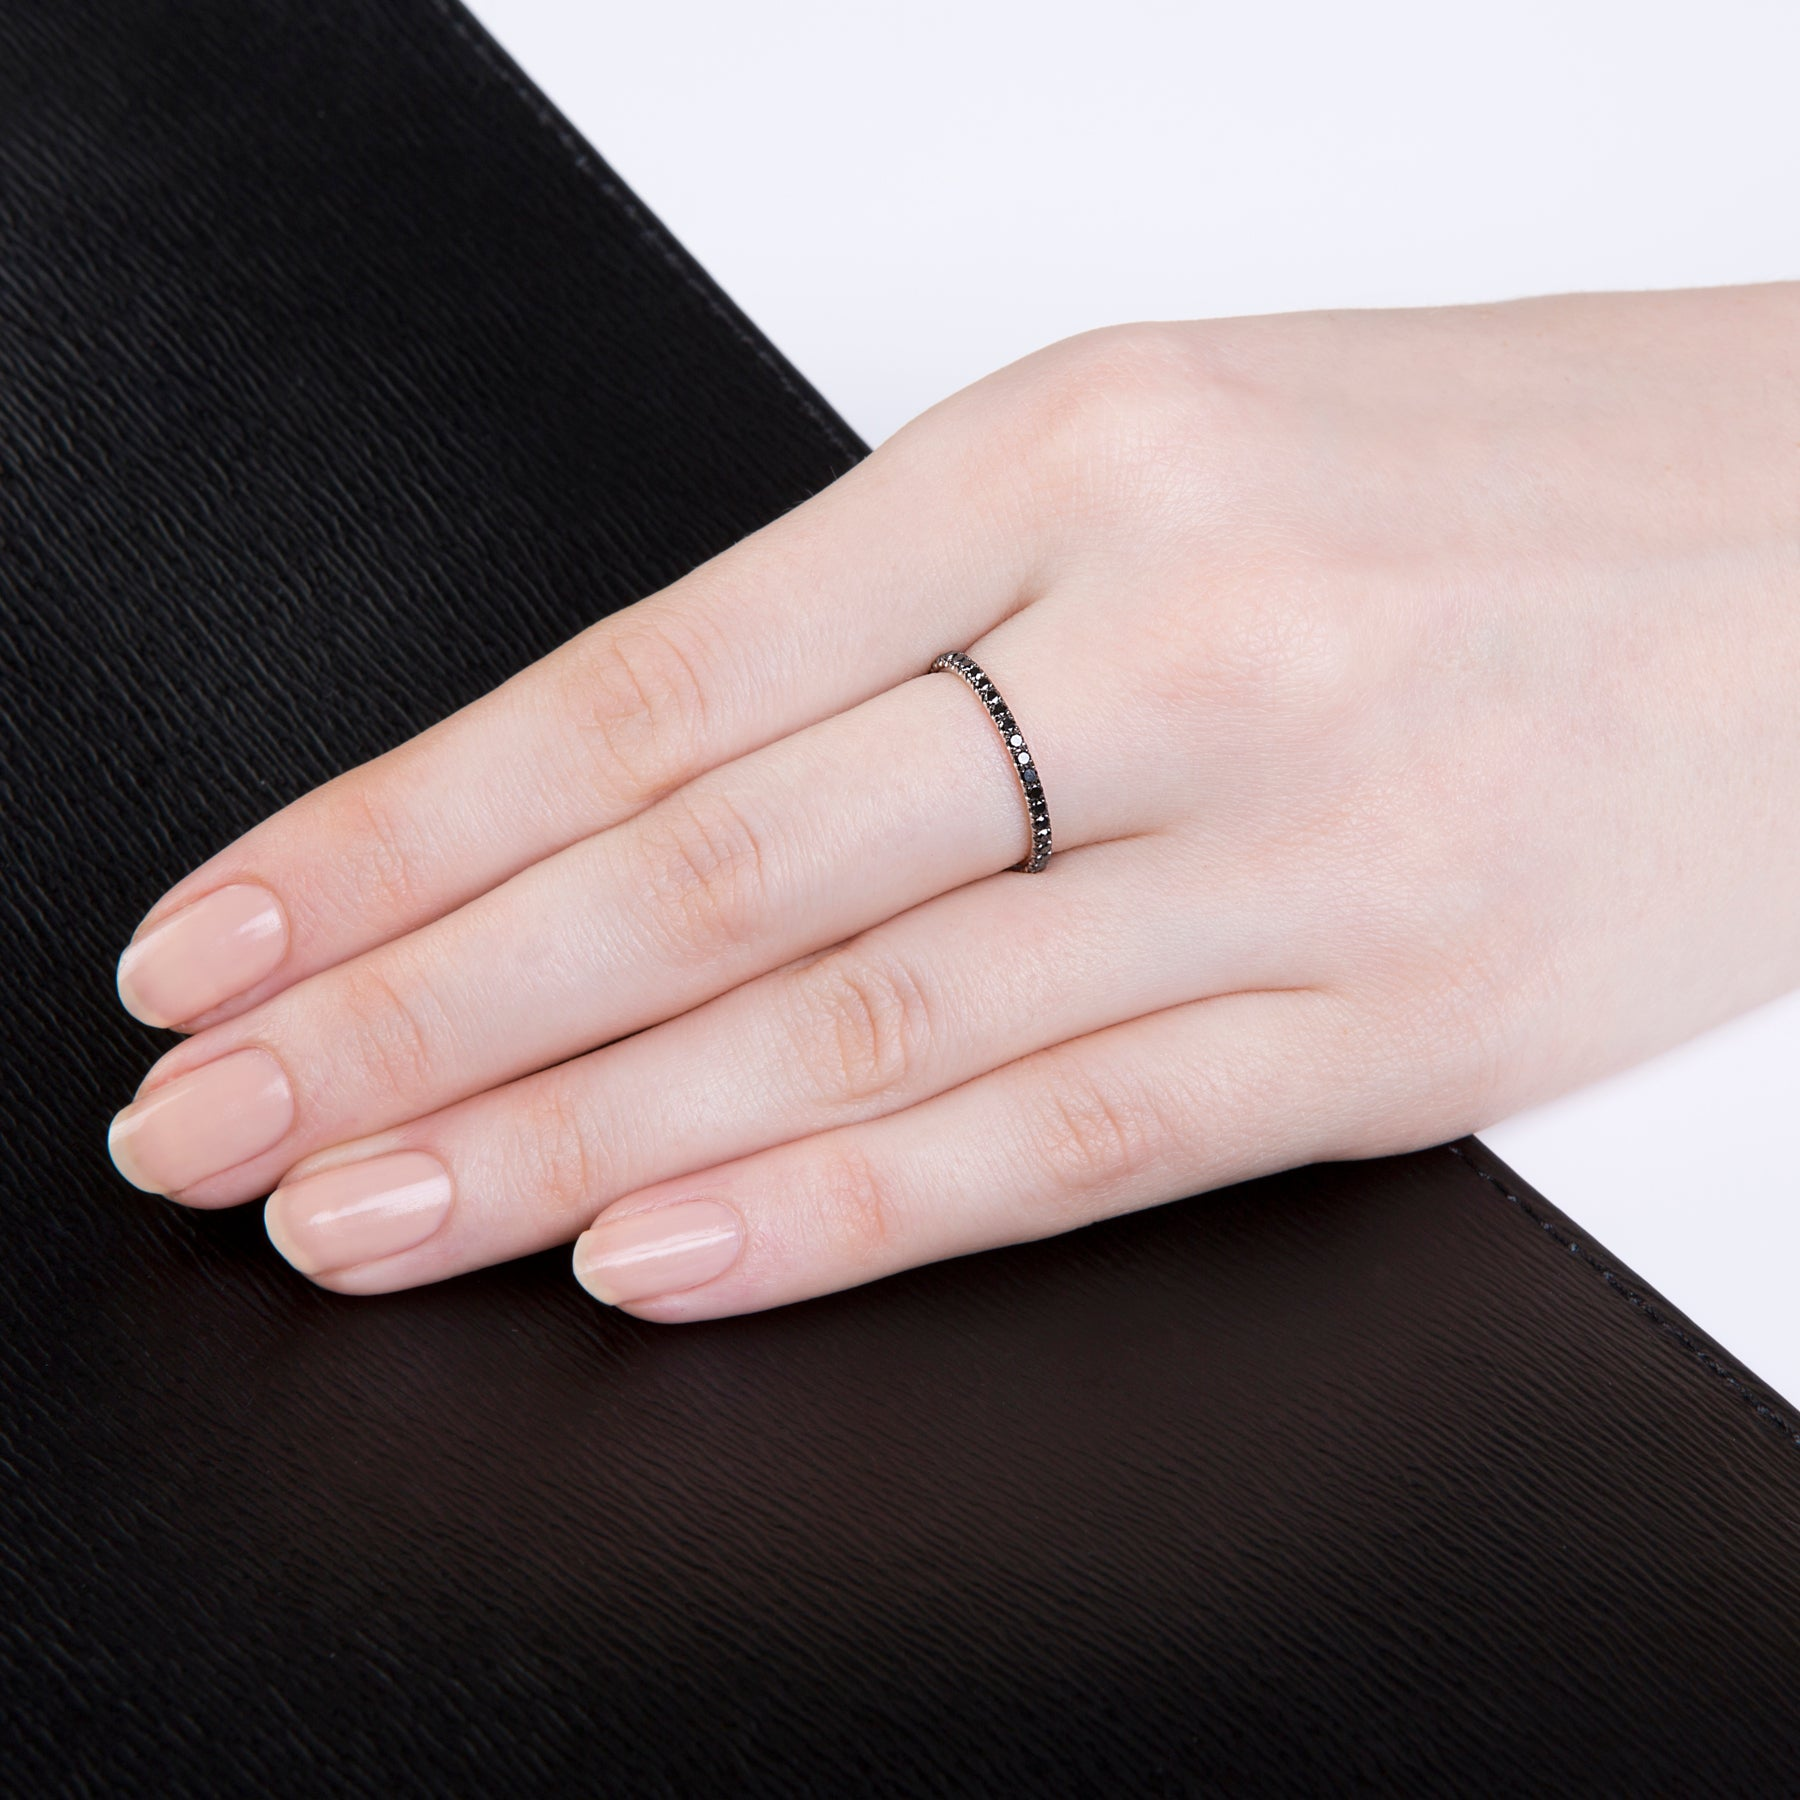 Image of Verifine black diamond ring with 18 carat white gold on a lady's hand